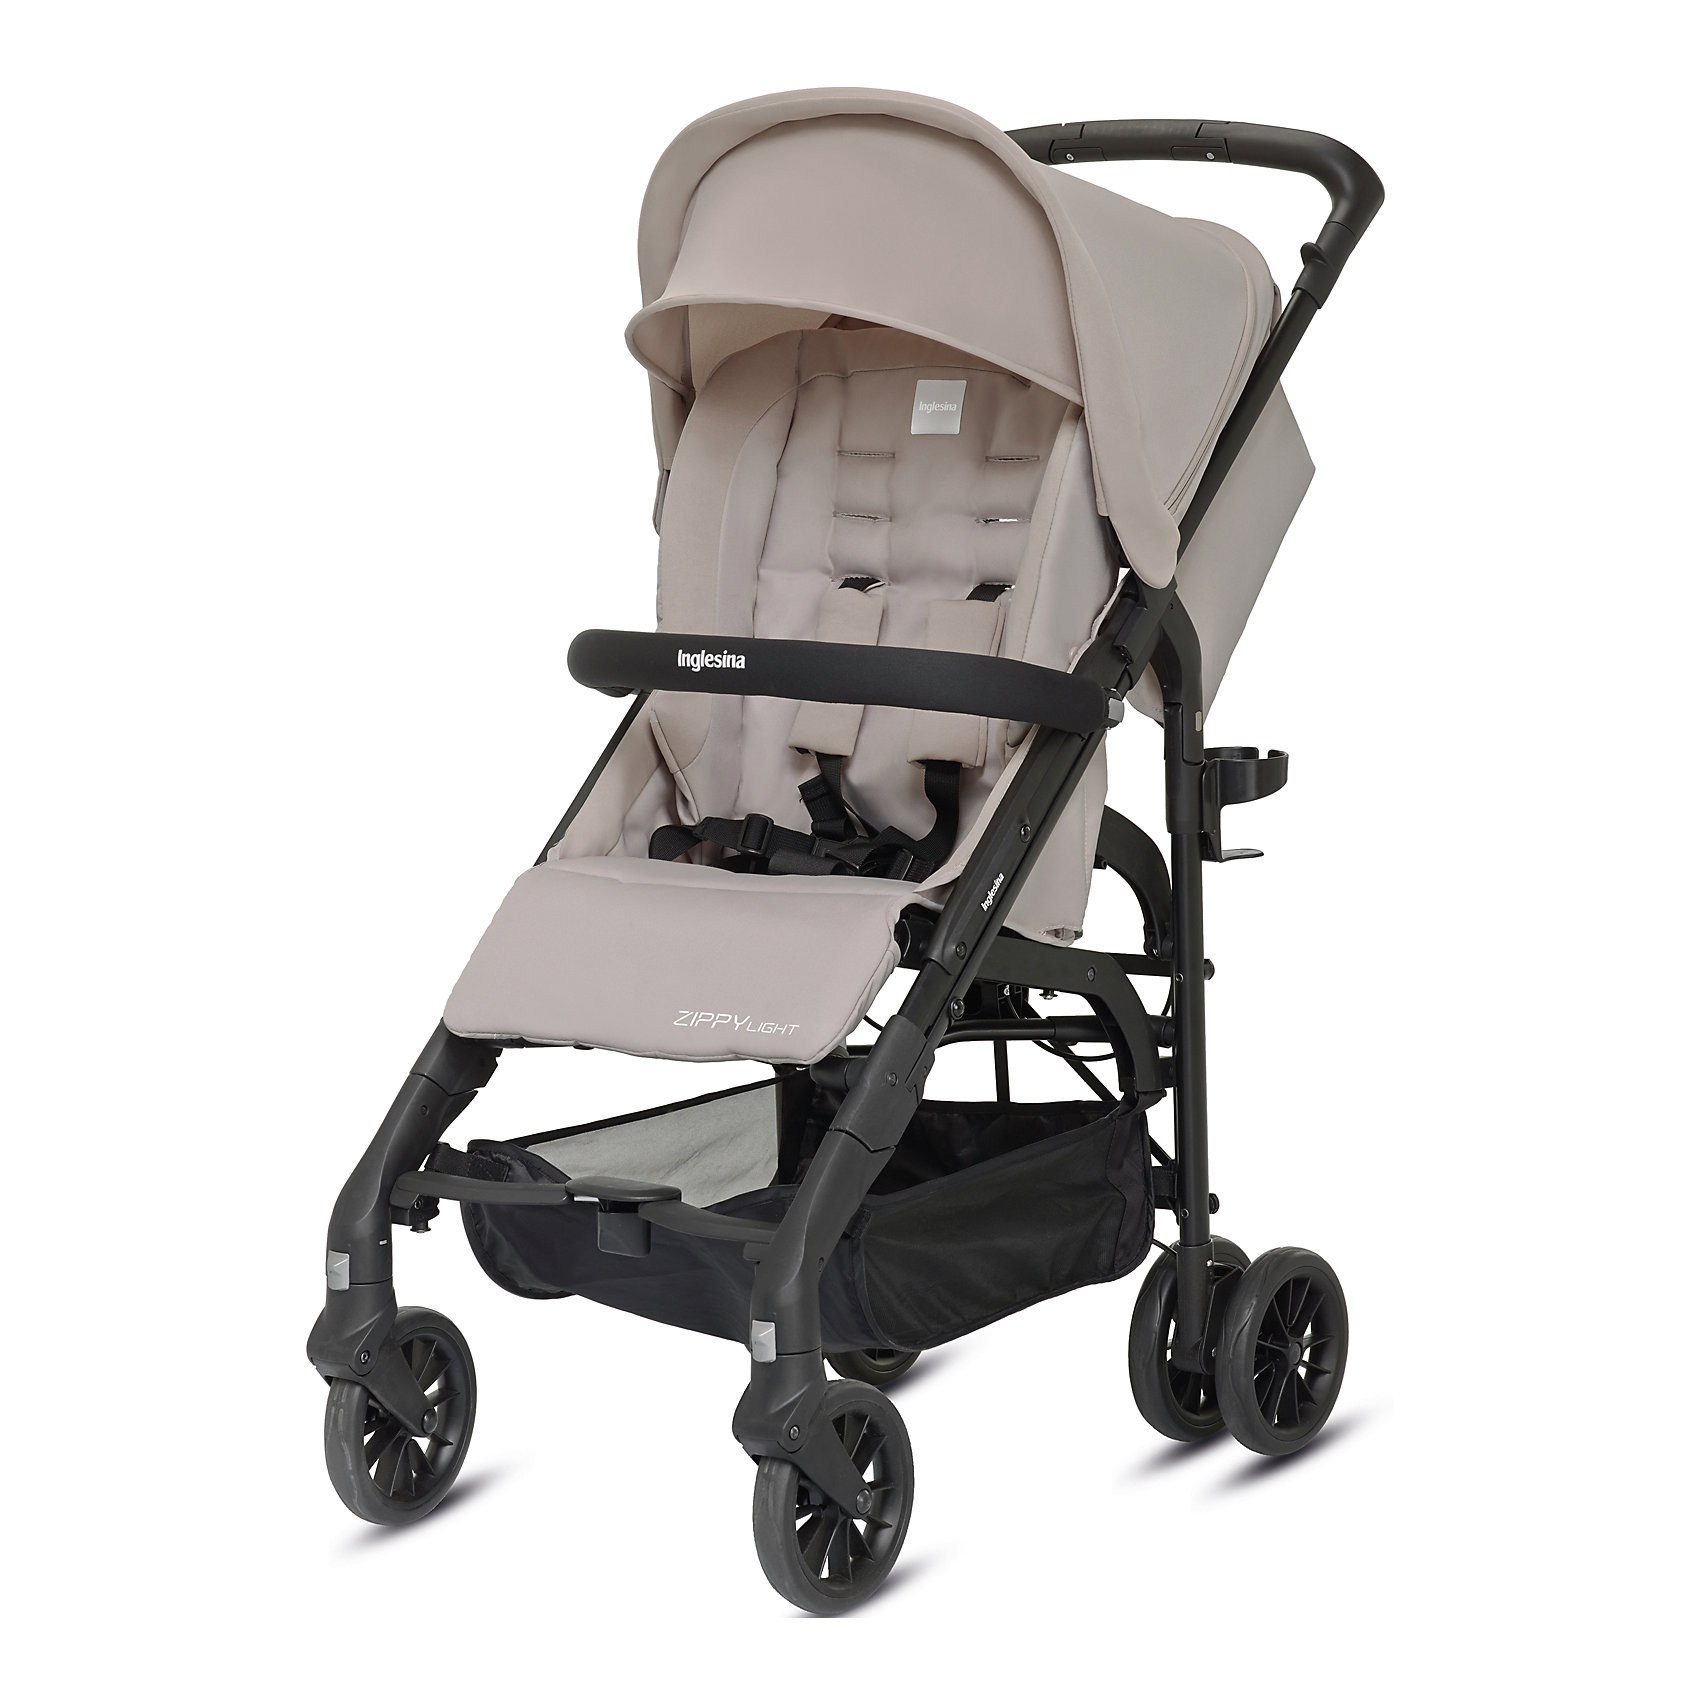 Inglesina Прогулочная коляска Zippy Light, Inglesina, Desert Dune прогулочная коляска cool baby kdd 6699gb t fuchsia light grey